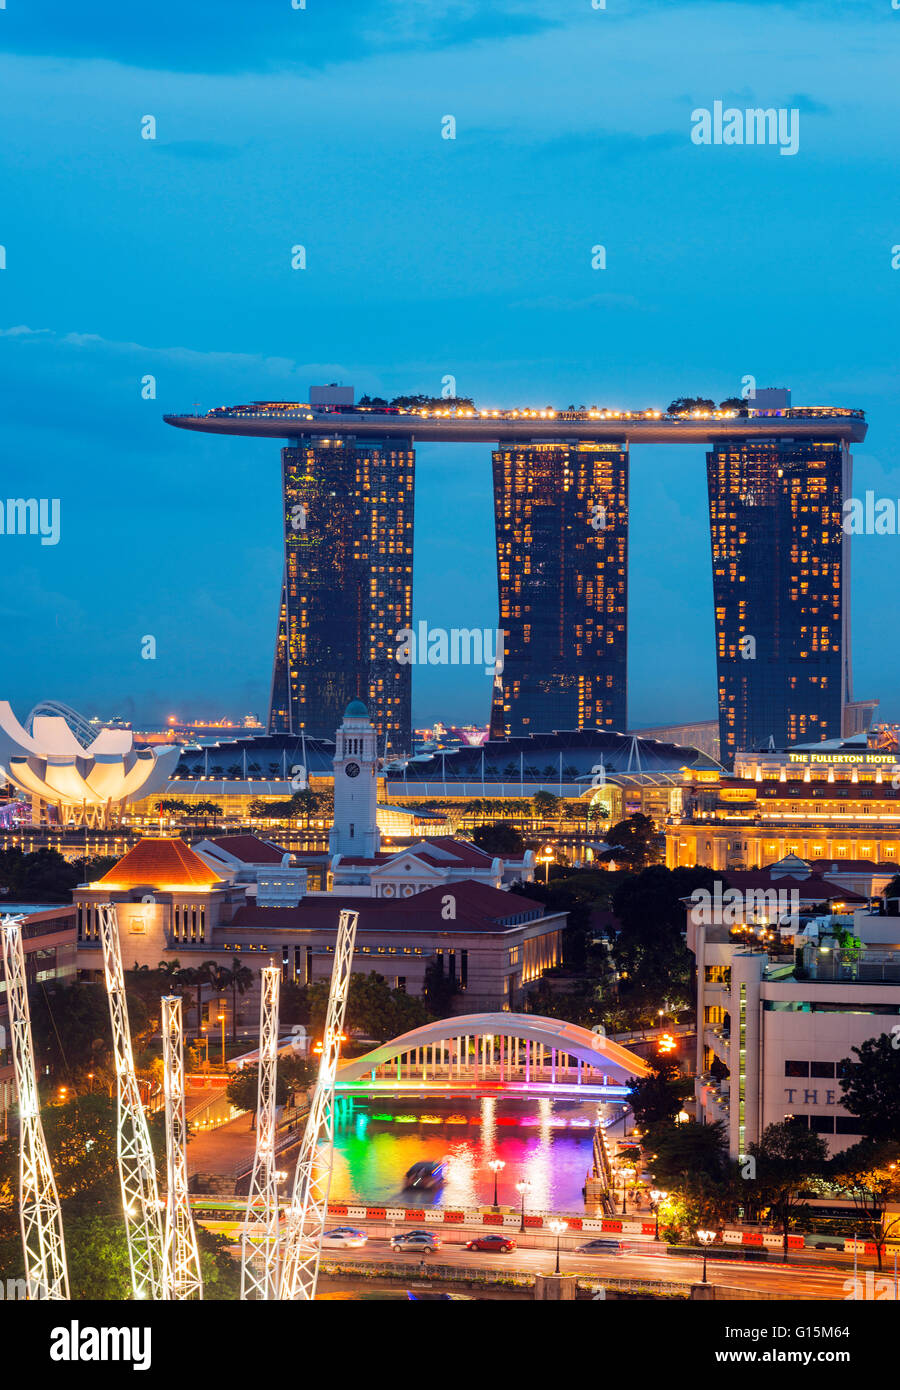 Clarke Quay and Marina Bay Sands Hotel and Casino, Singapore, Southeast Asia, Asia - Stock Image